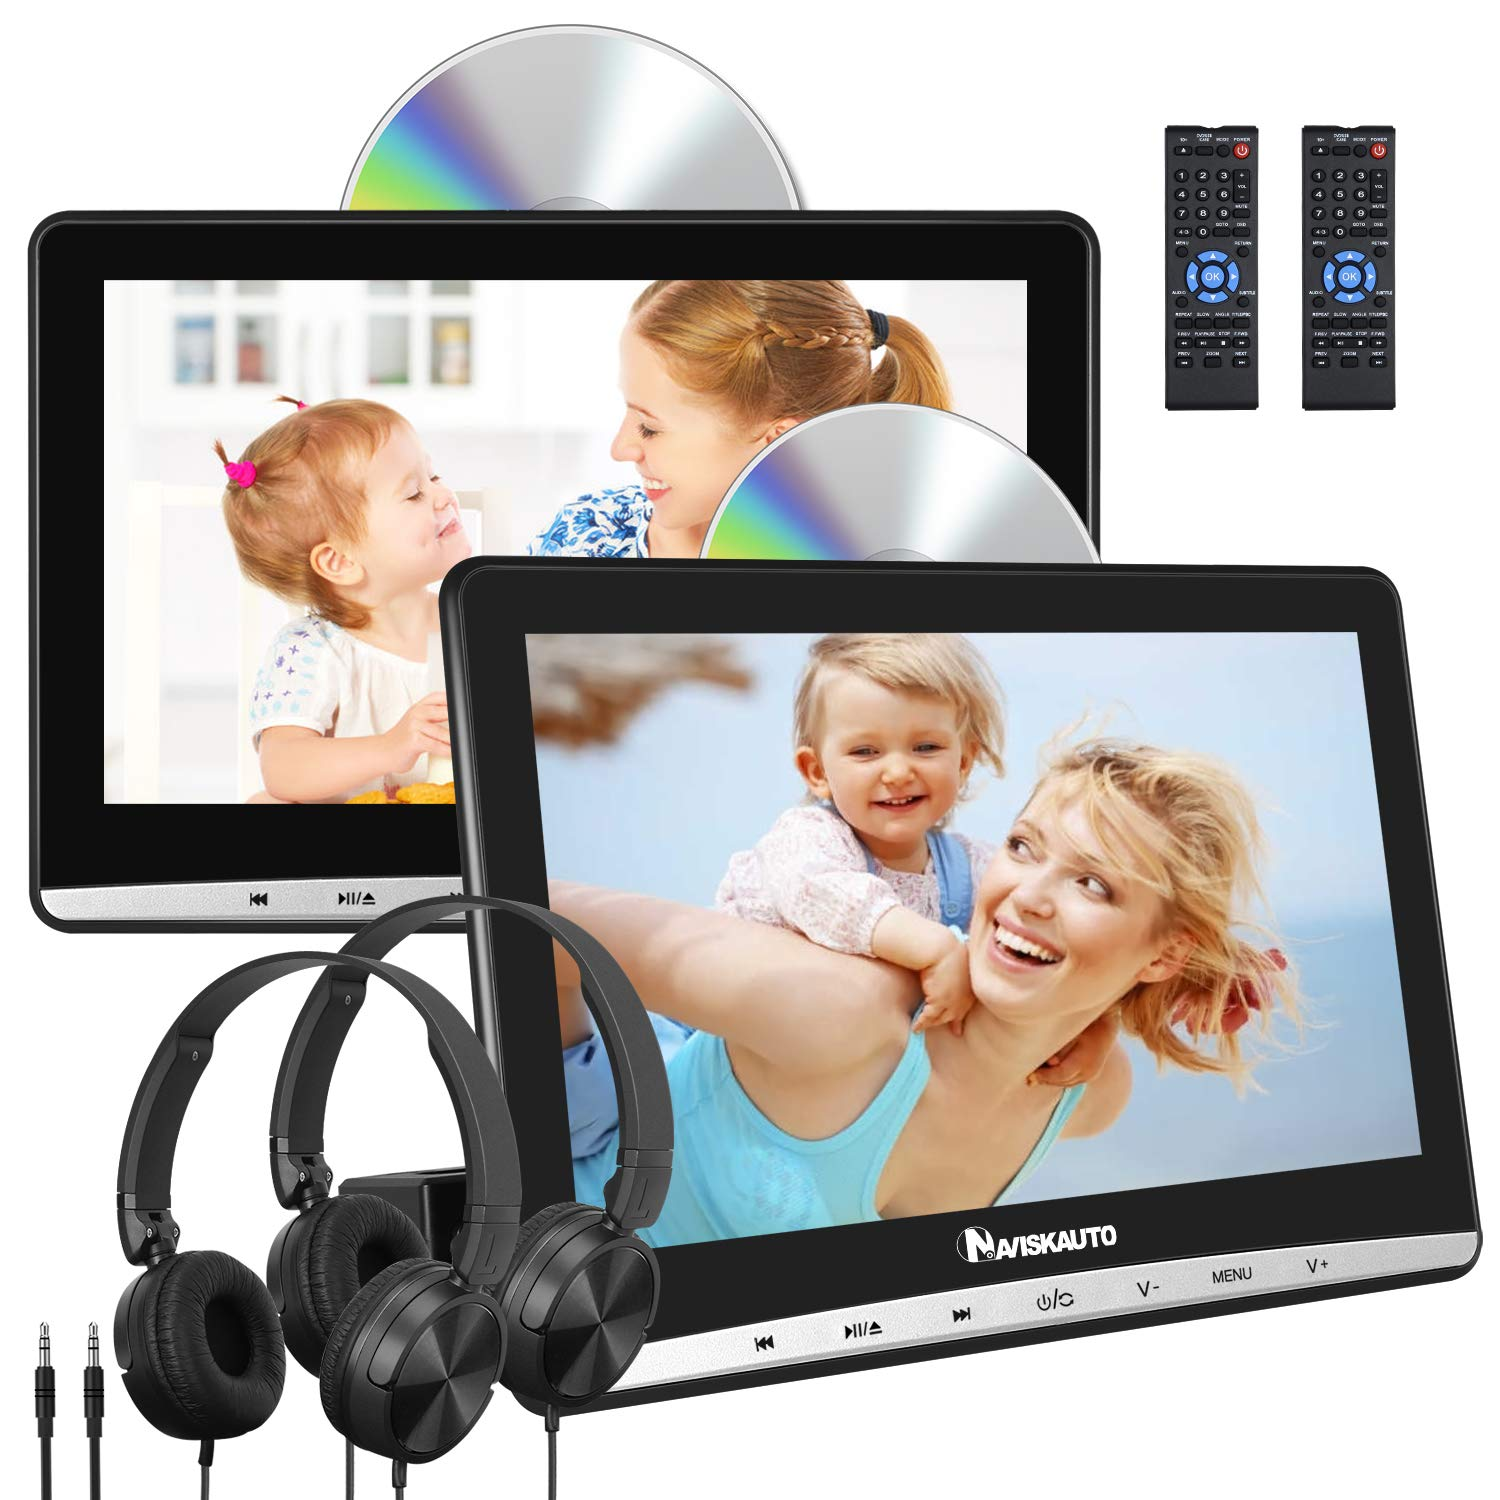 NAVISKAUTO 10.1'' Dual Car DVD Players with 2 Headphones and Inhalation Drive Support Same/Different Video Playing, AV Out & in, Last Memory, Region Free (2 Same Headrest DVD Players) by NAVISKAUTO